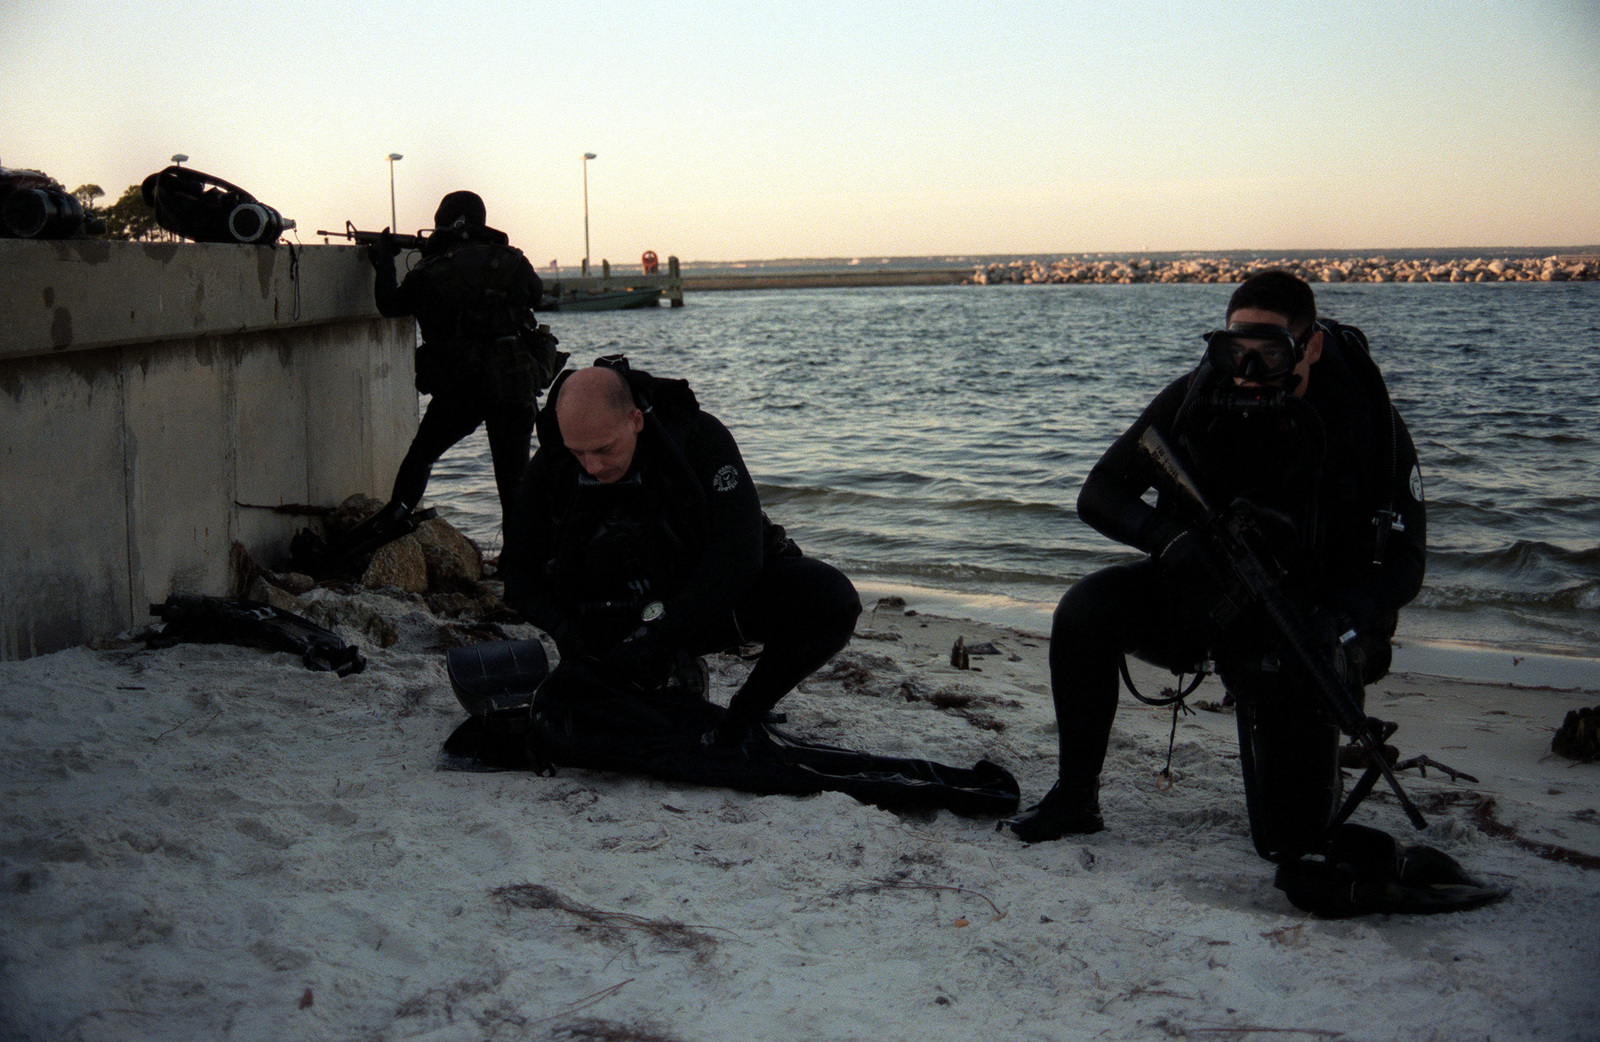 STAFF Sergeant Thomas (background), of 2D Reconnaissance Battalion posts security while other divers take off their dive equipment. The 2D Reconnaissance Marines have been deployed to Hurlbert Field, Flordia, for two-week long dive/land maneuvers training exercise. They are armed with 5.56mm Colt M16A2 Assault Rifle and are using the LAR-V Closed Circuit Rebreather